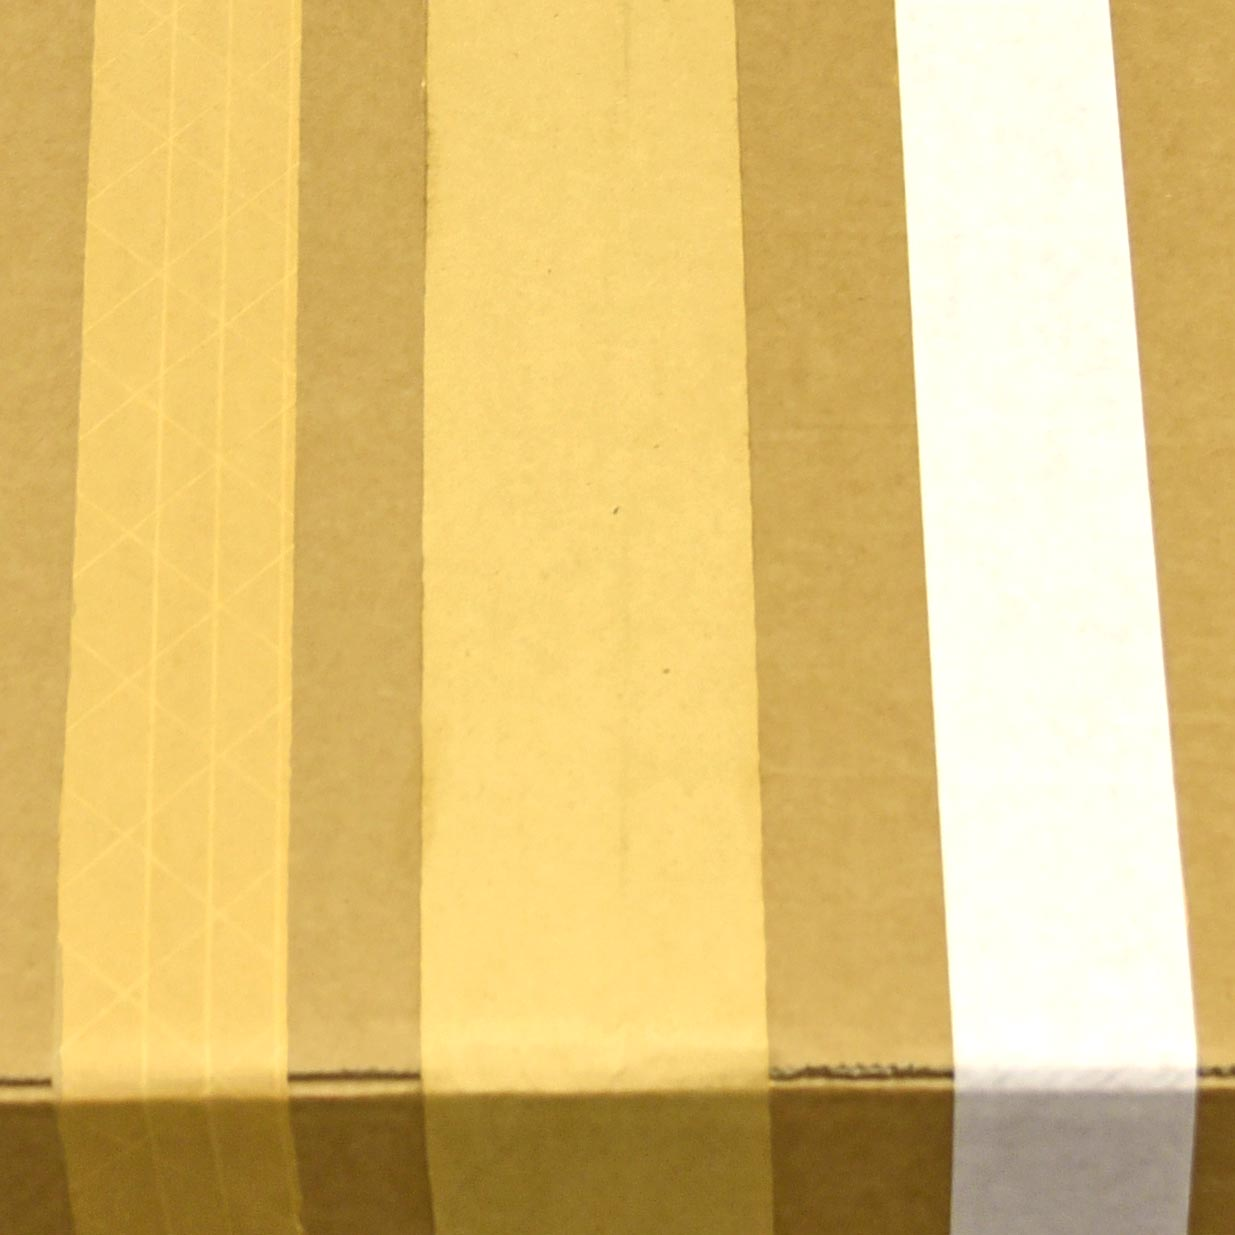 gummed paper tape Get white kraft gummed paper tape - water activated tape at wholesale prices at tapejunglecom, the tape superstore 877-284-4781.